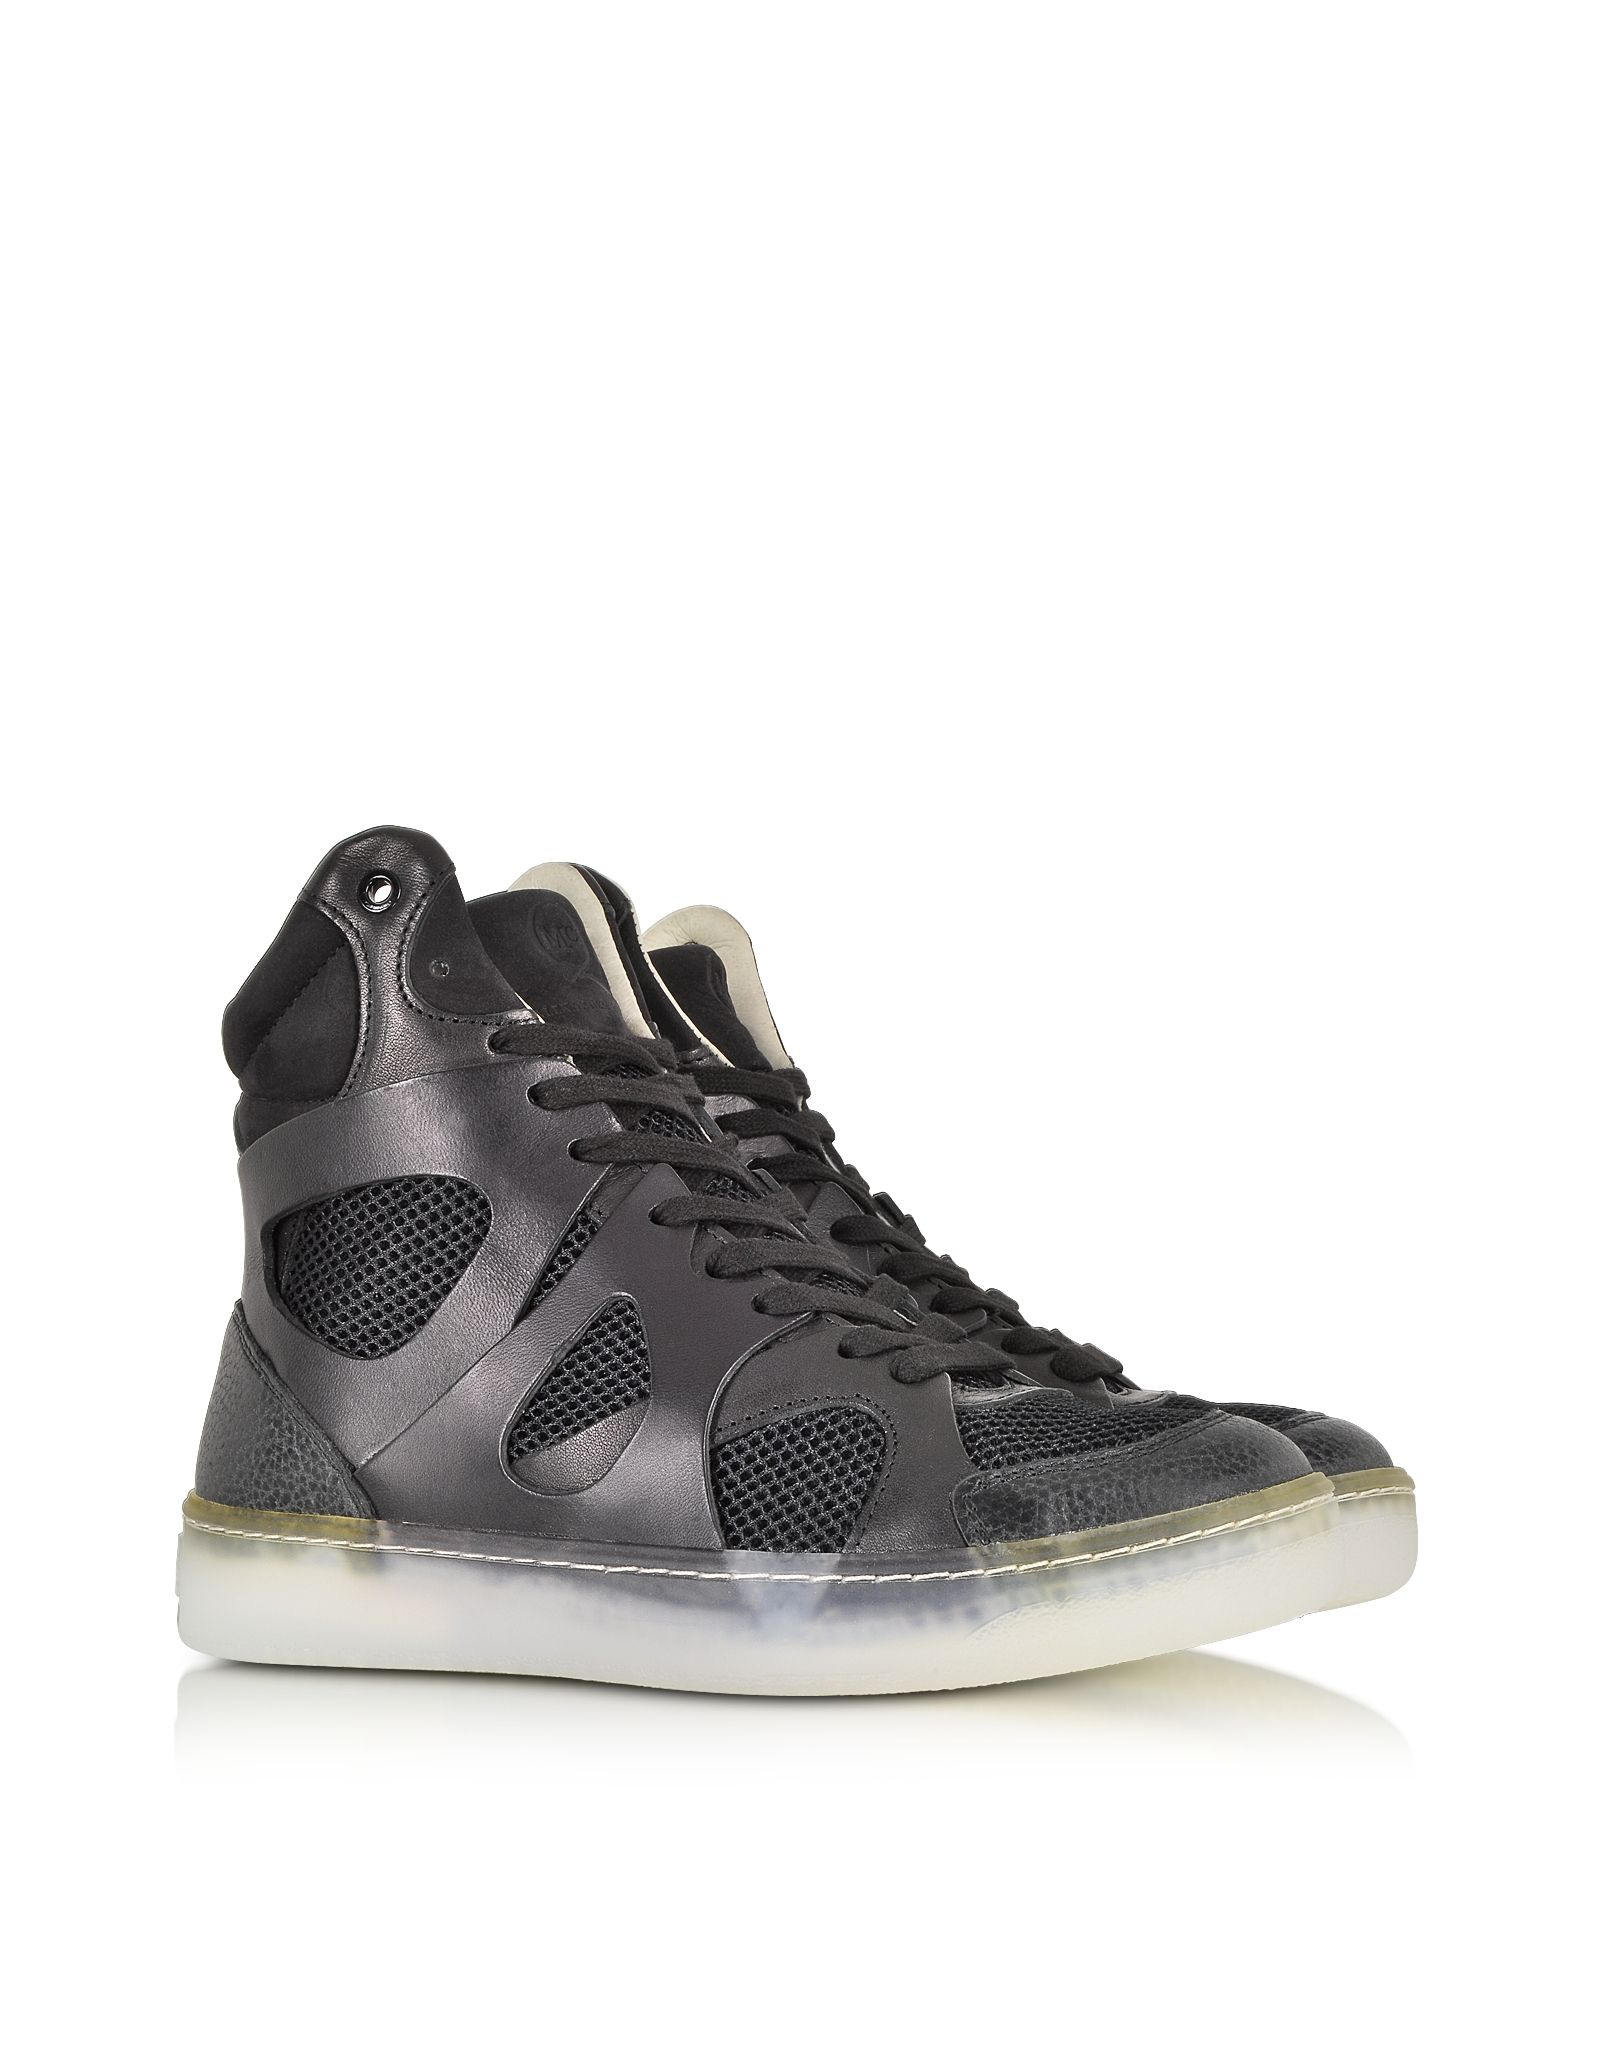 0512fbf80ec McQ Alexander McQueen x Puma Black Leather And Mesh Move Mid High-Tops at  FORZIERI  488